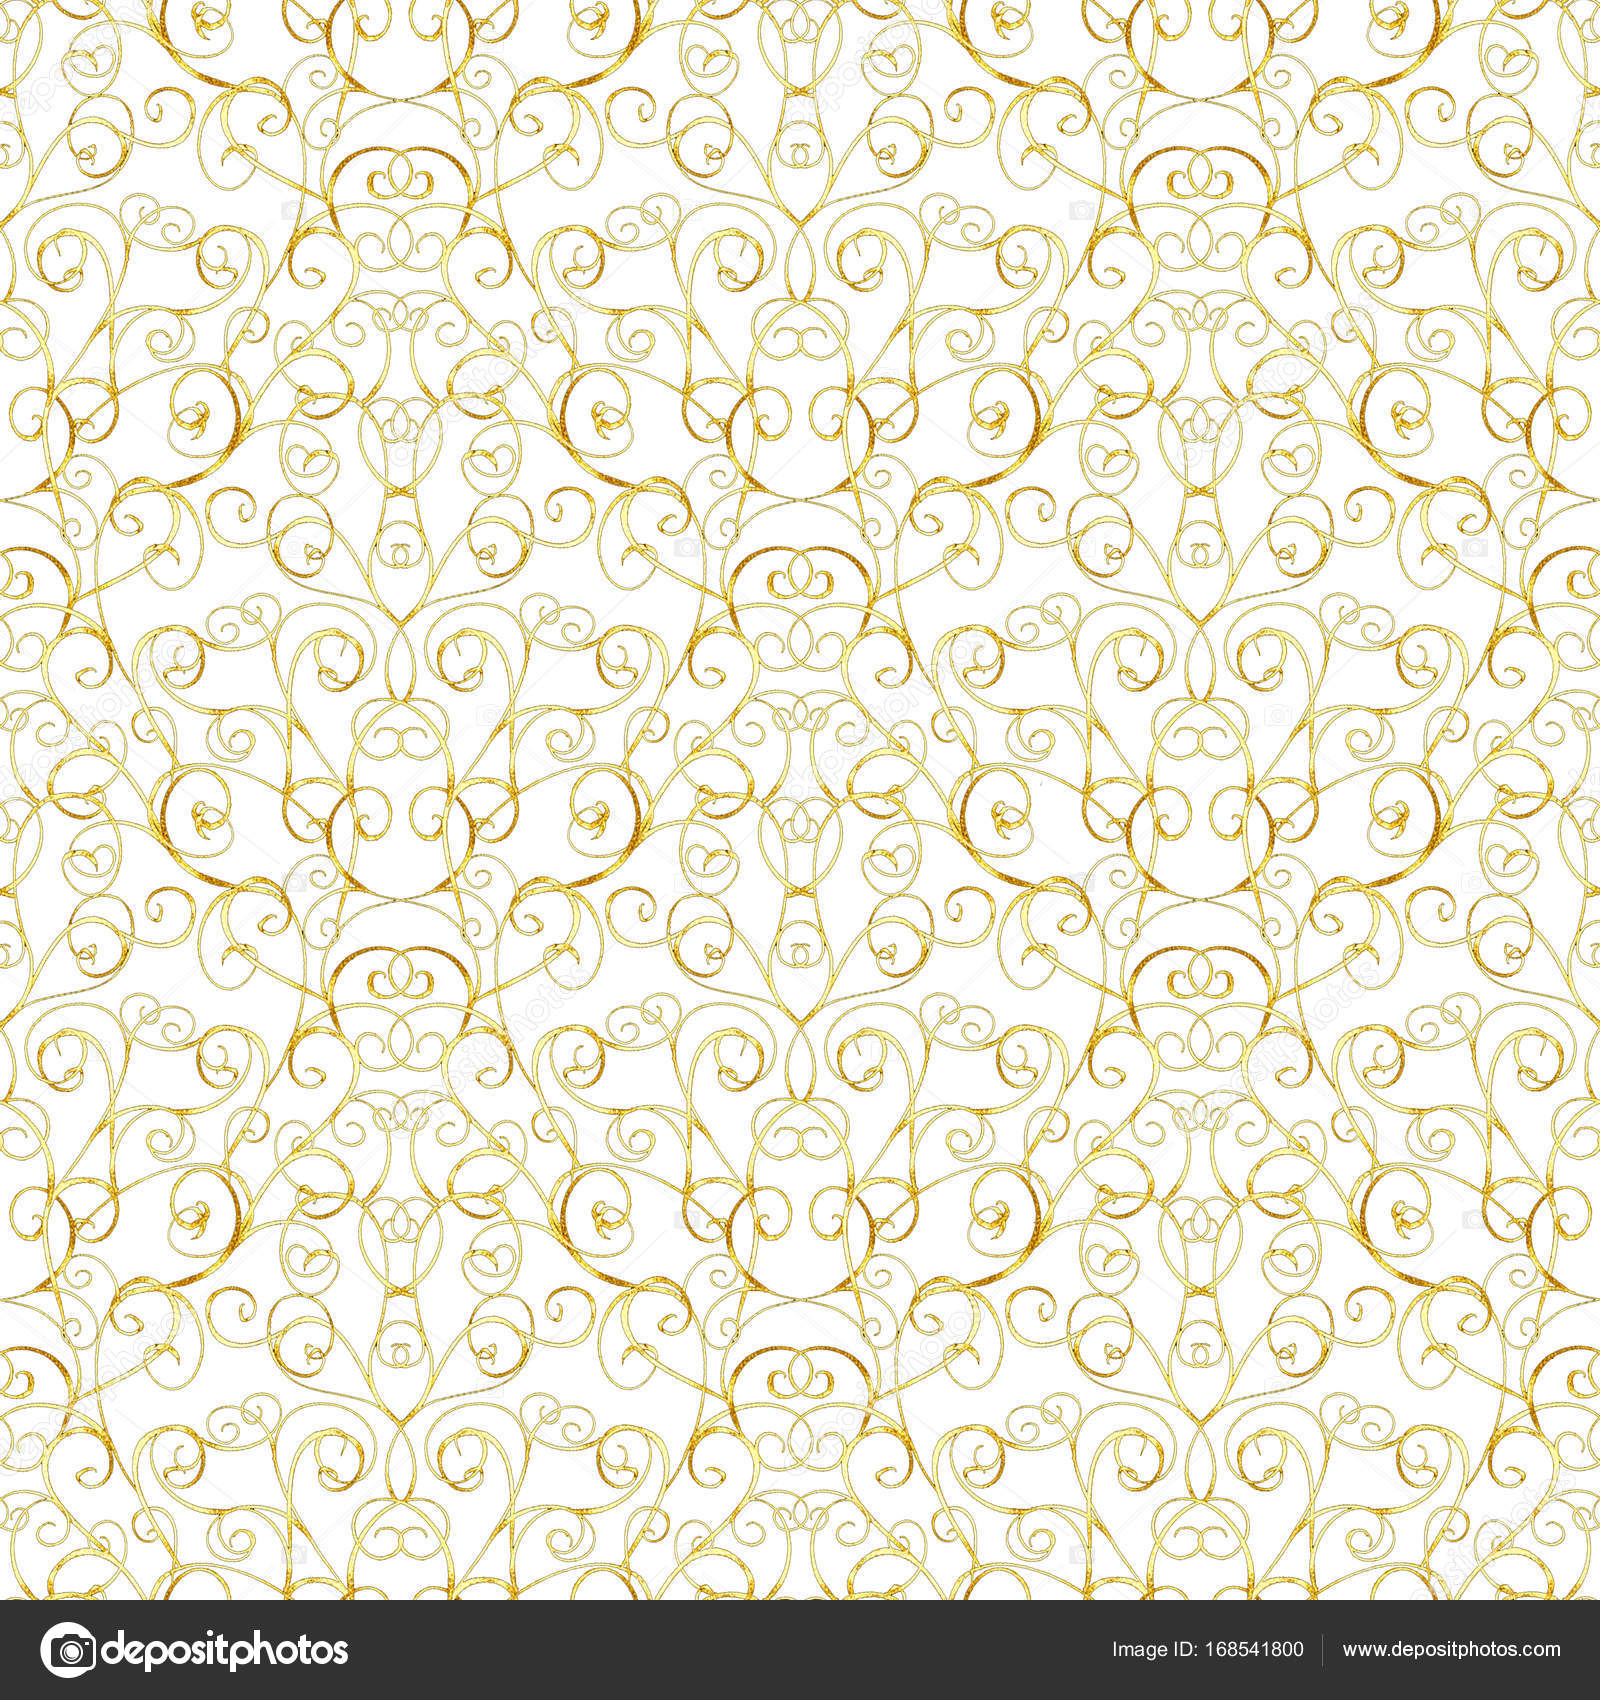 Luxury Gold Royal Seamless Pattern On White Background For Wallpaper Wrapping Textile Web Page Invitation Card Fashion Design